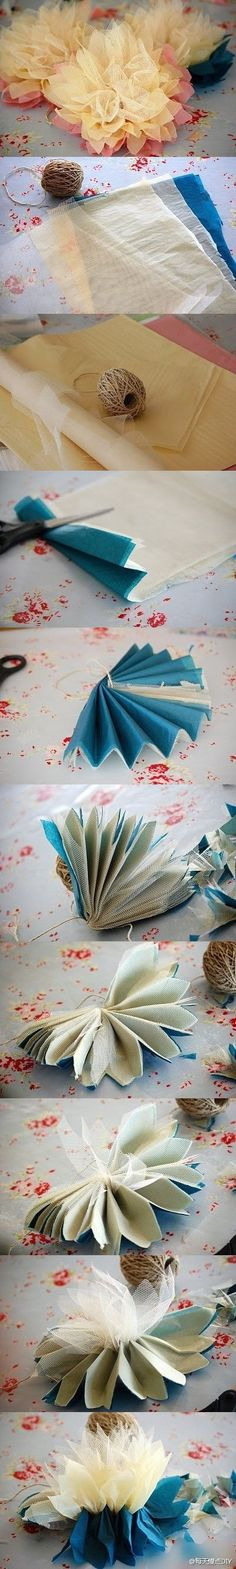 These would be great for centerpieces for weddings!!!! Beautiful Floral DIY